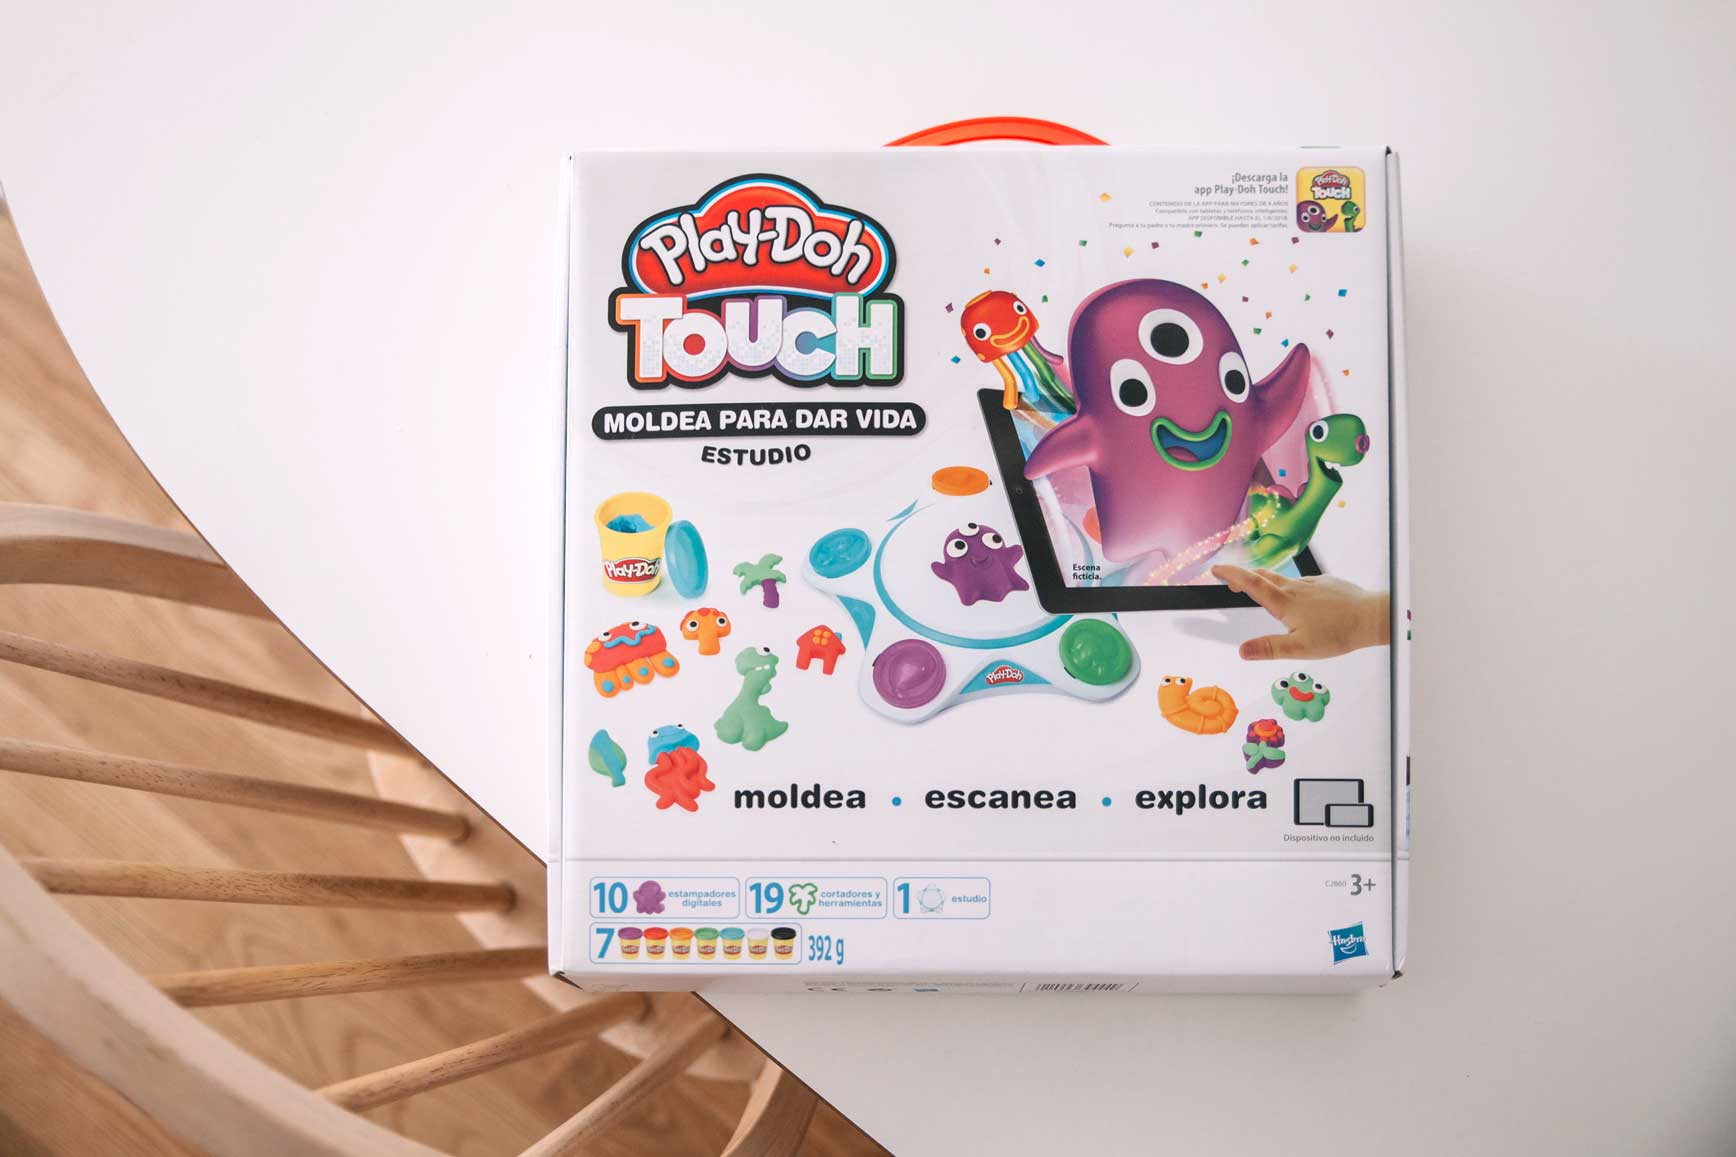 Playdoh-Touch-01